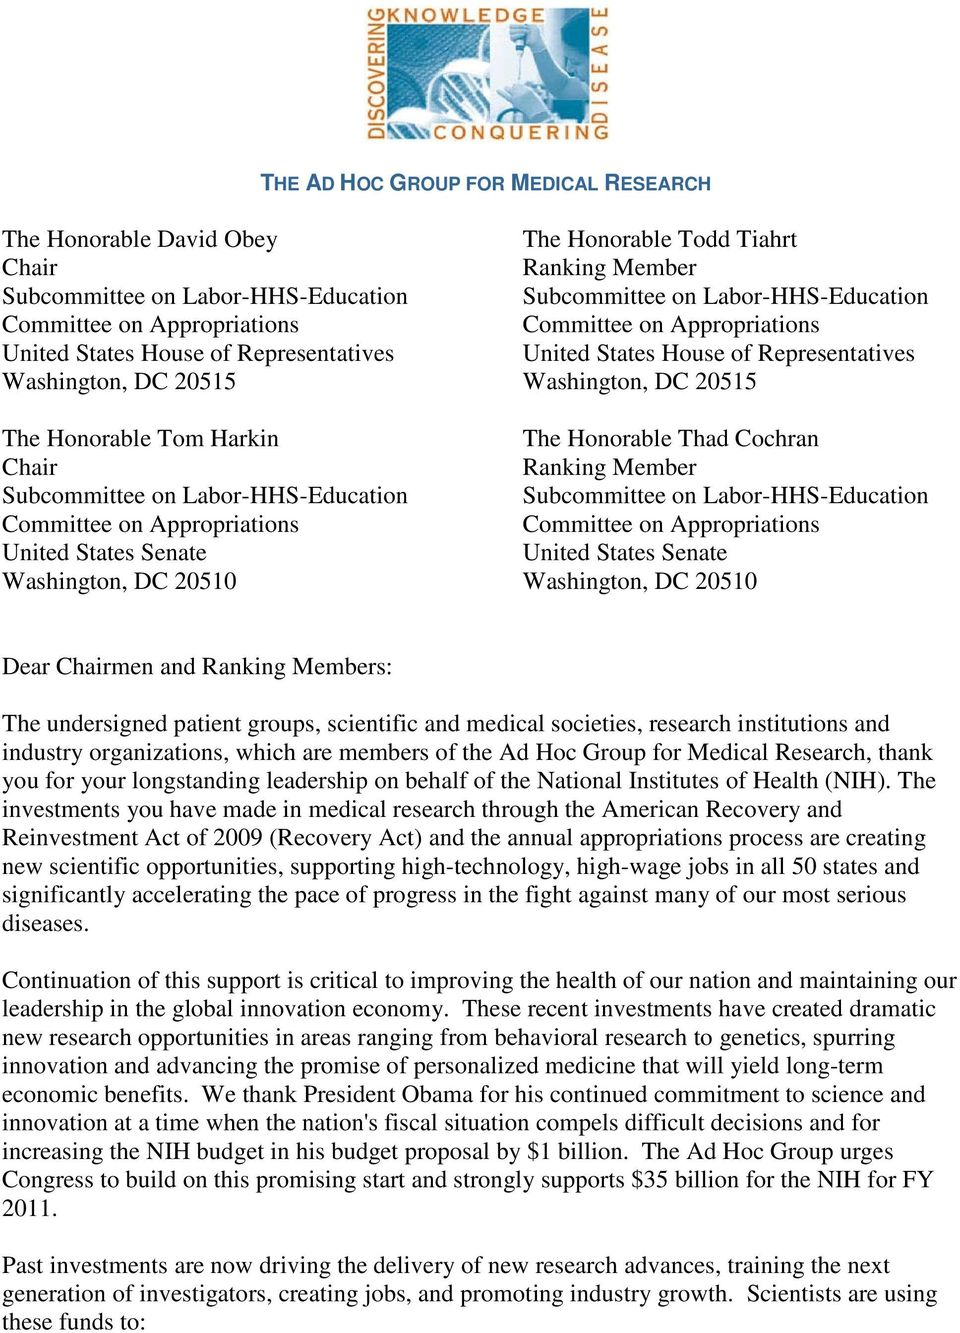 Labor-HHS-Education Subcommittee on Labor-HHS-Education United States Senate United States Senate Washington, DC 20510 Washington, DC 20510 Dear Chairmen and Ranking Members: The undersigned patient